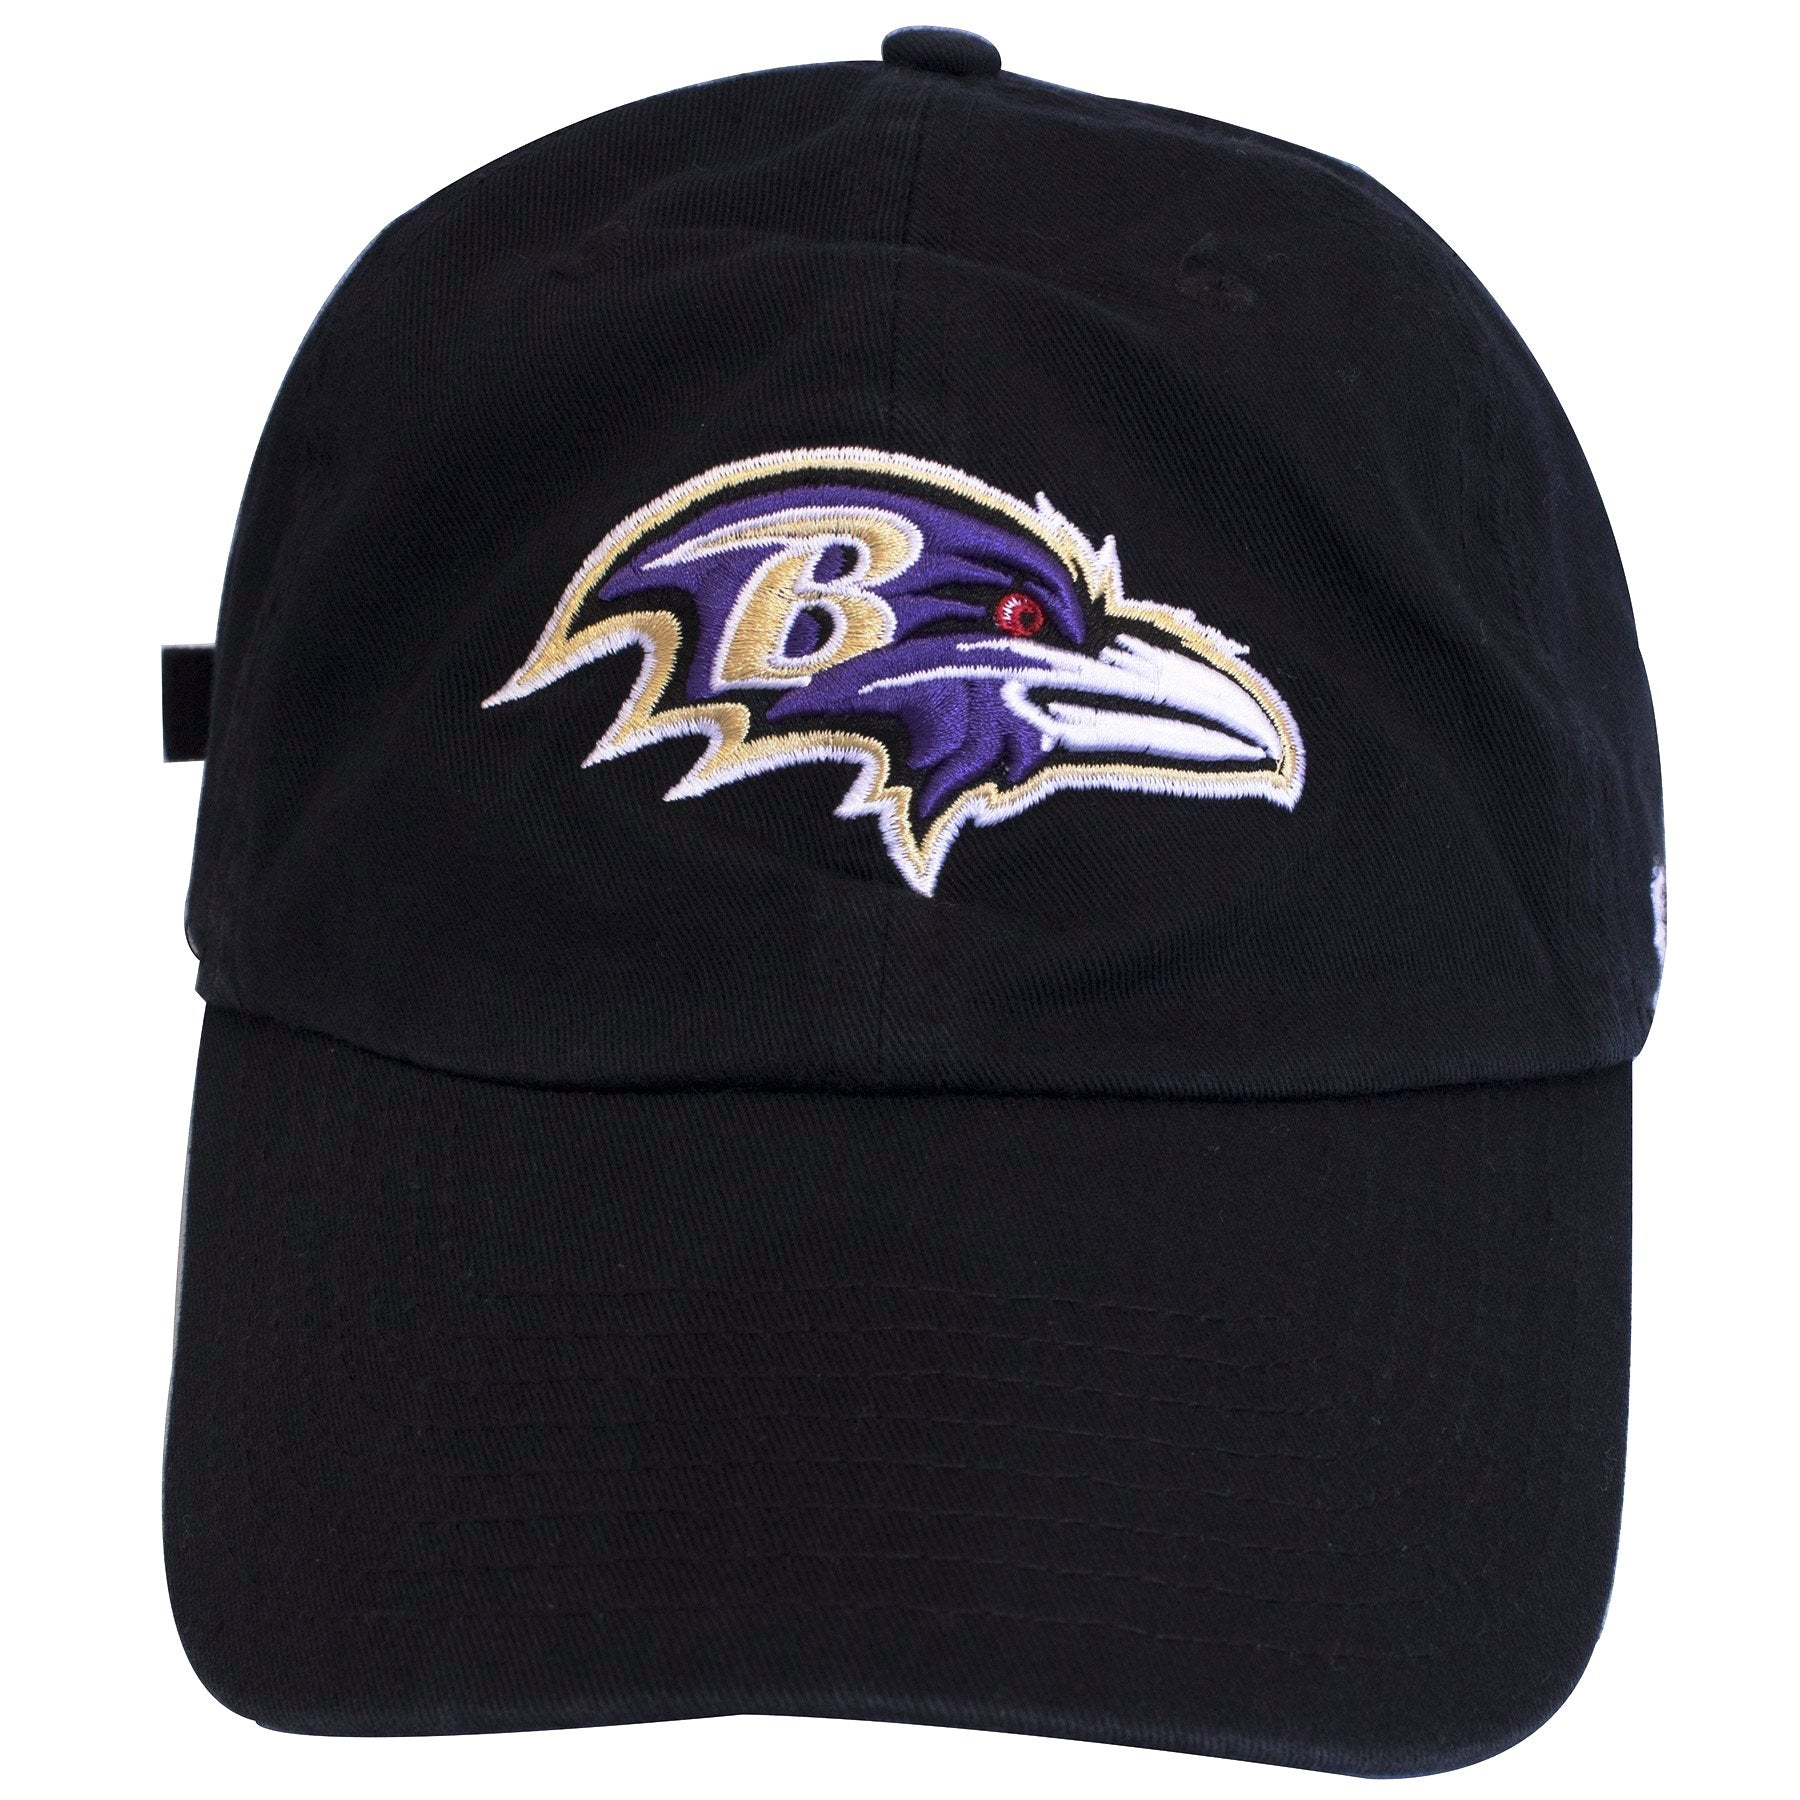 d43f207920289 on the front of the baltimore ravens black adjustable dad hat is the  baltimore ravens logo